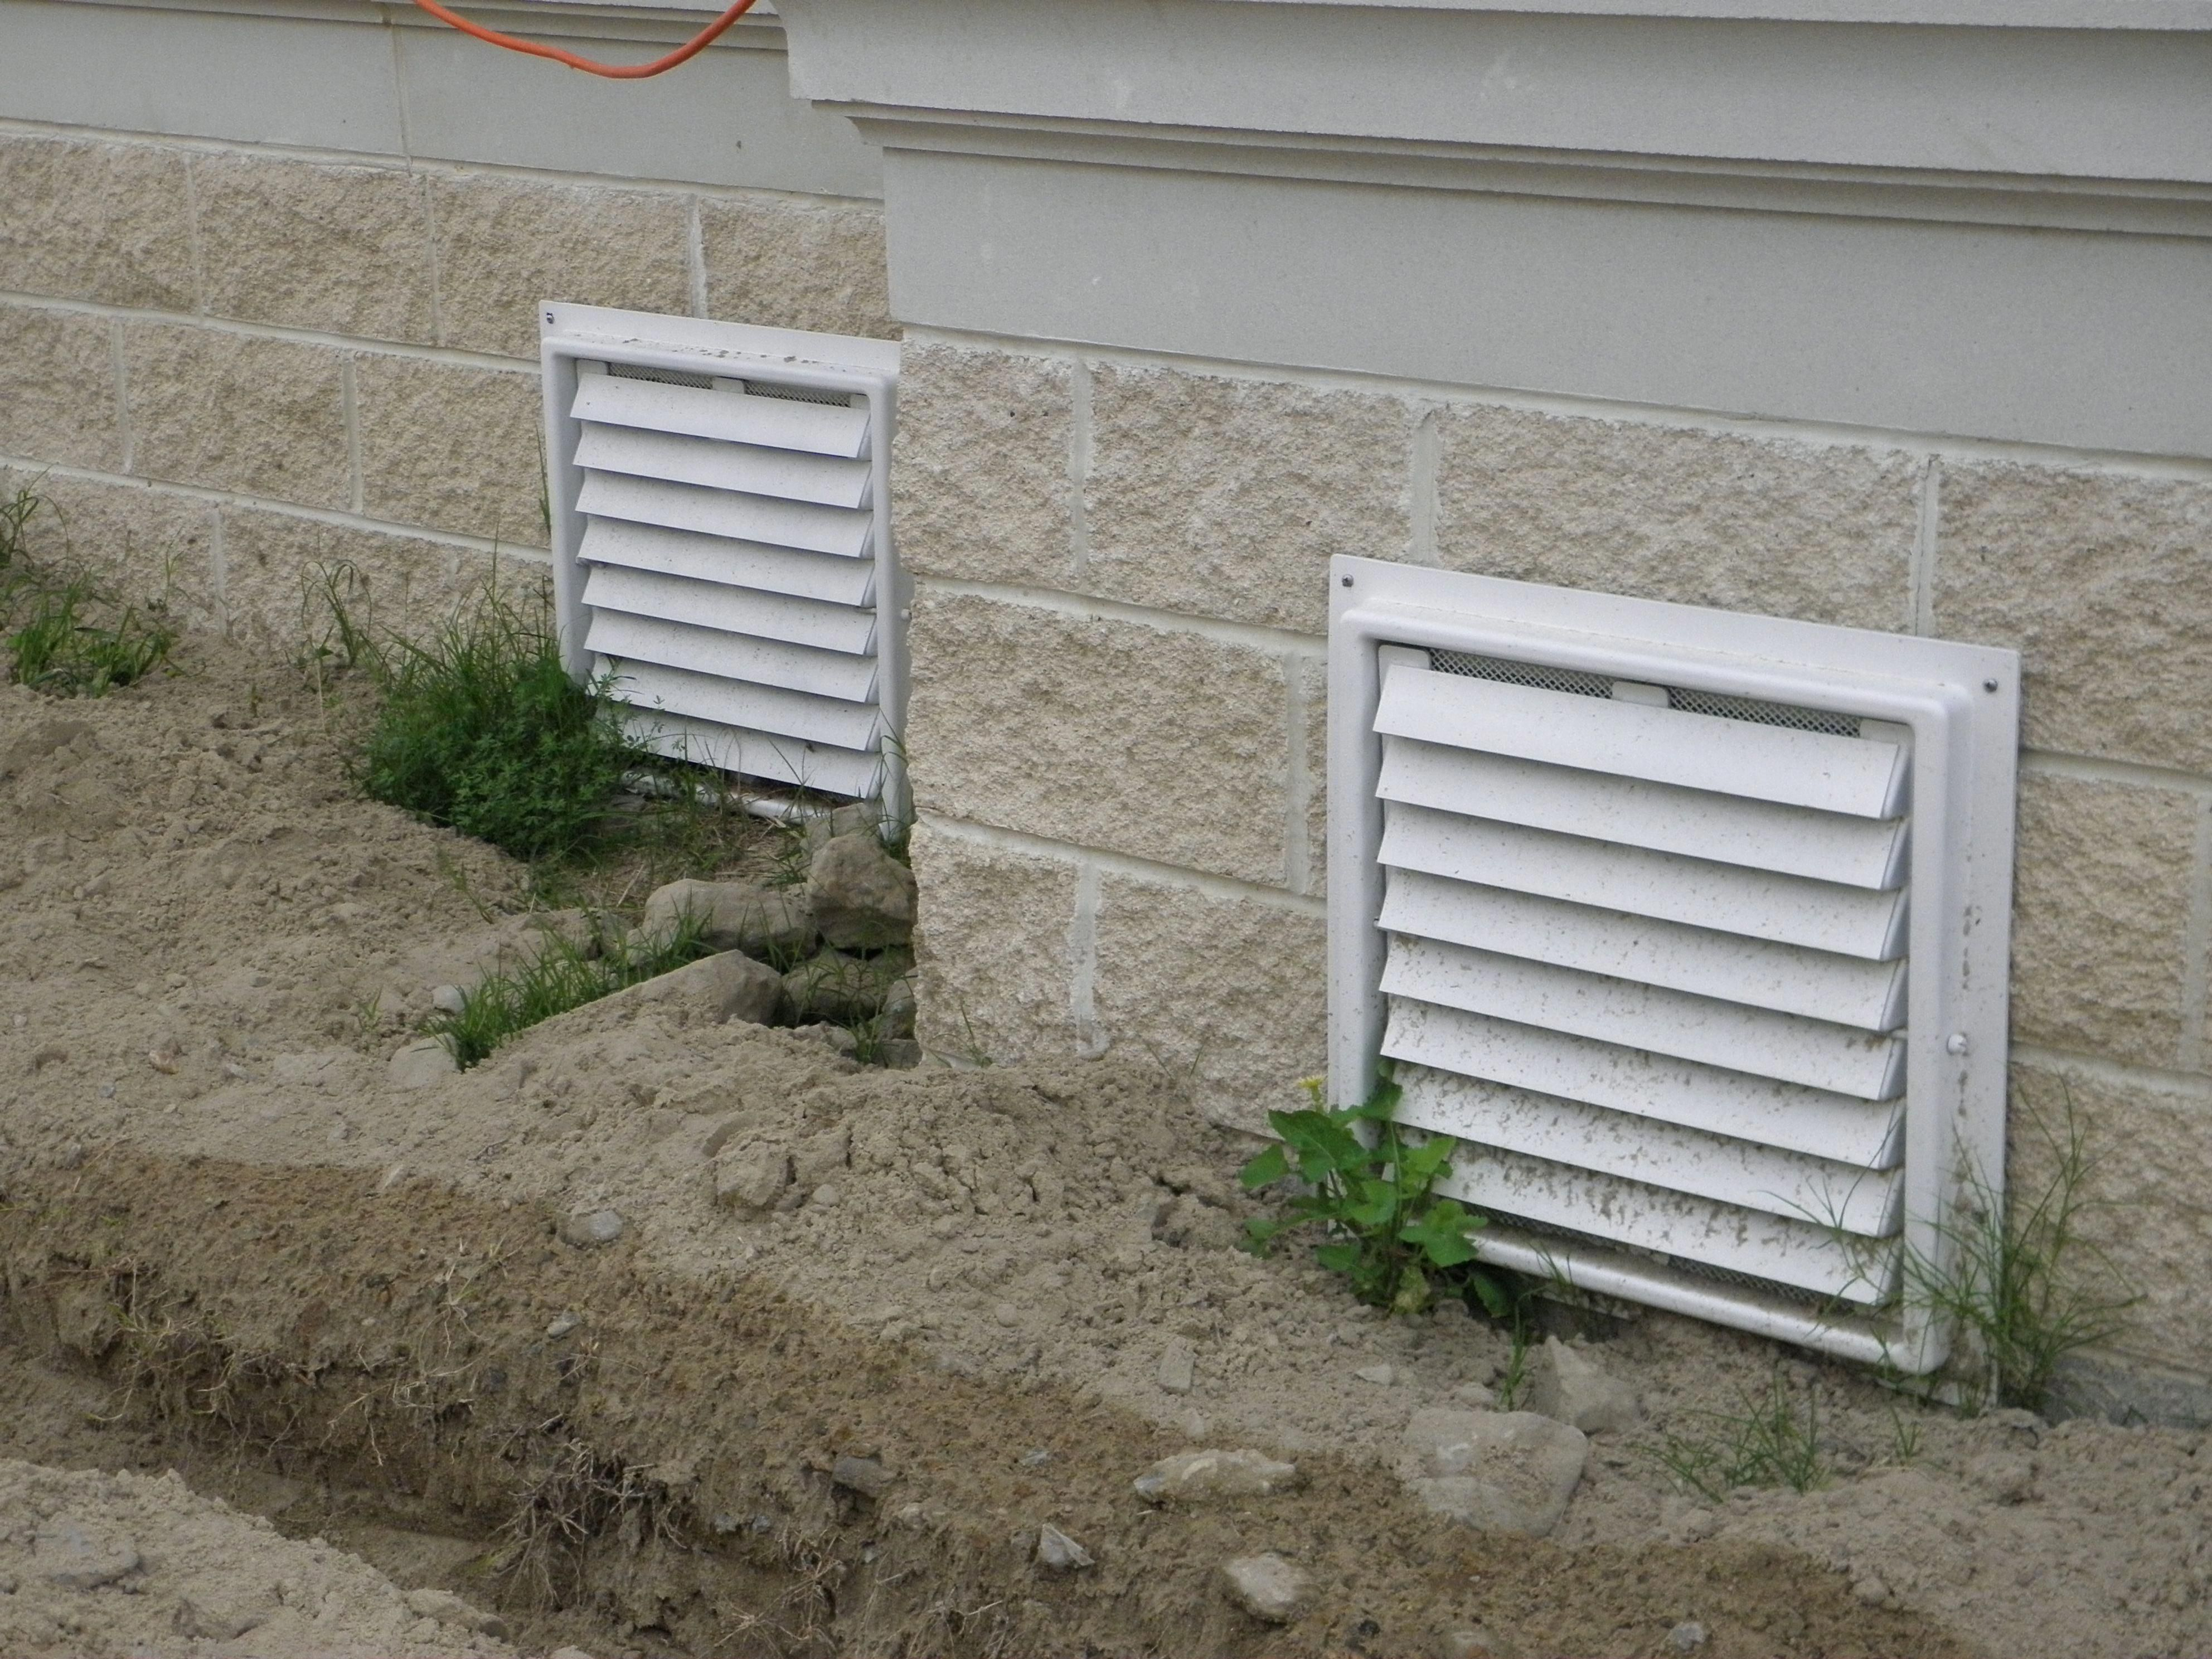 Landscaping Job Description Landscapingverobeach Flood Vents